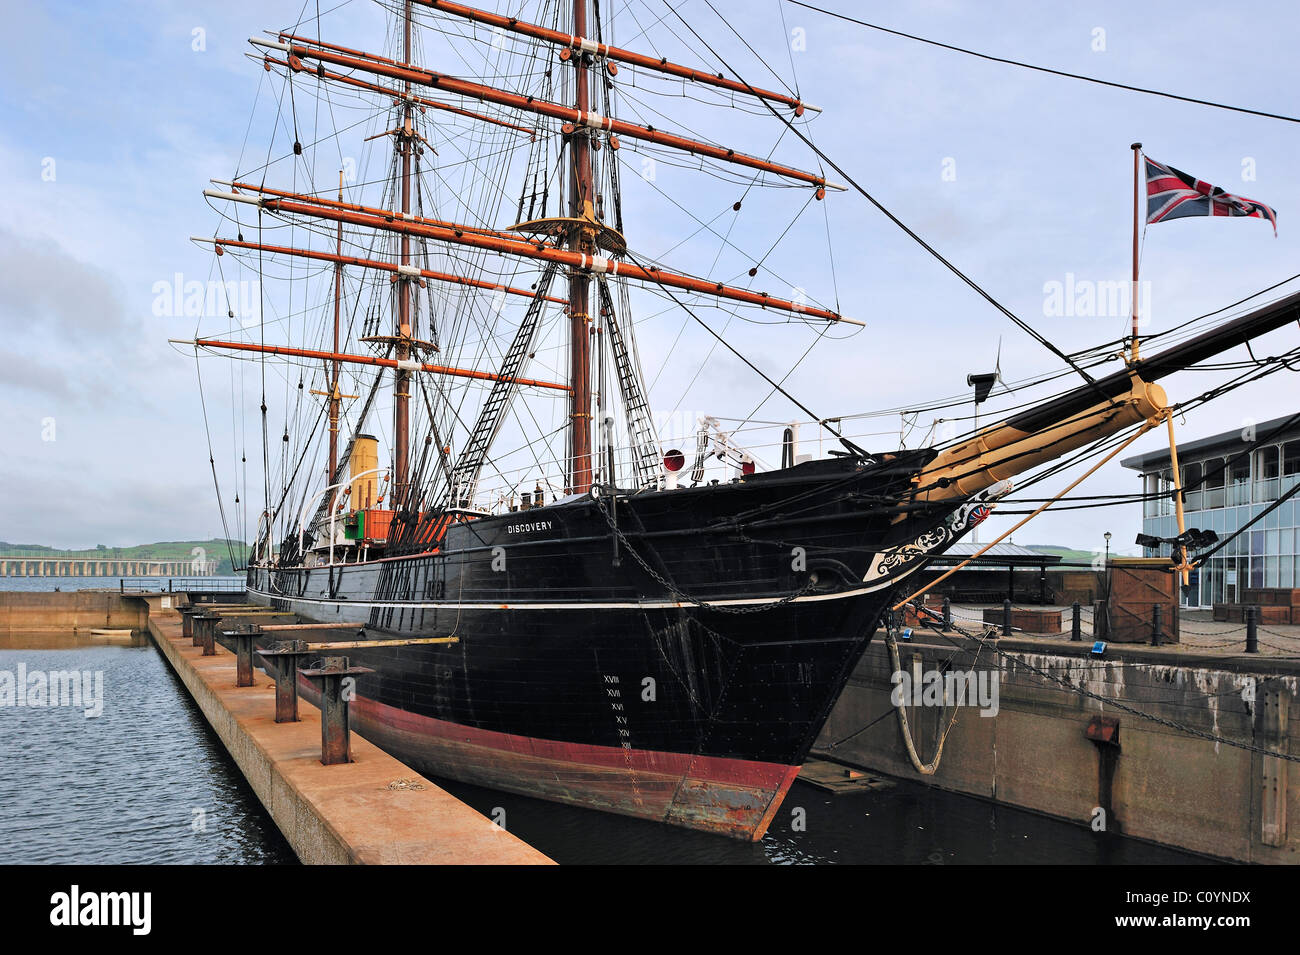 Royal Research Ship Discovery famous by explorer Robert Falcon Scott at Discovery Point, Dundee, Scotland, UK - Stock Image